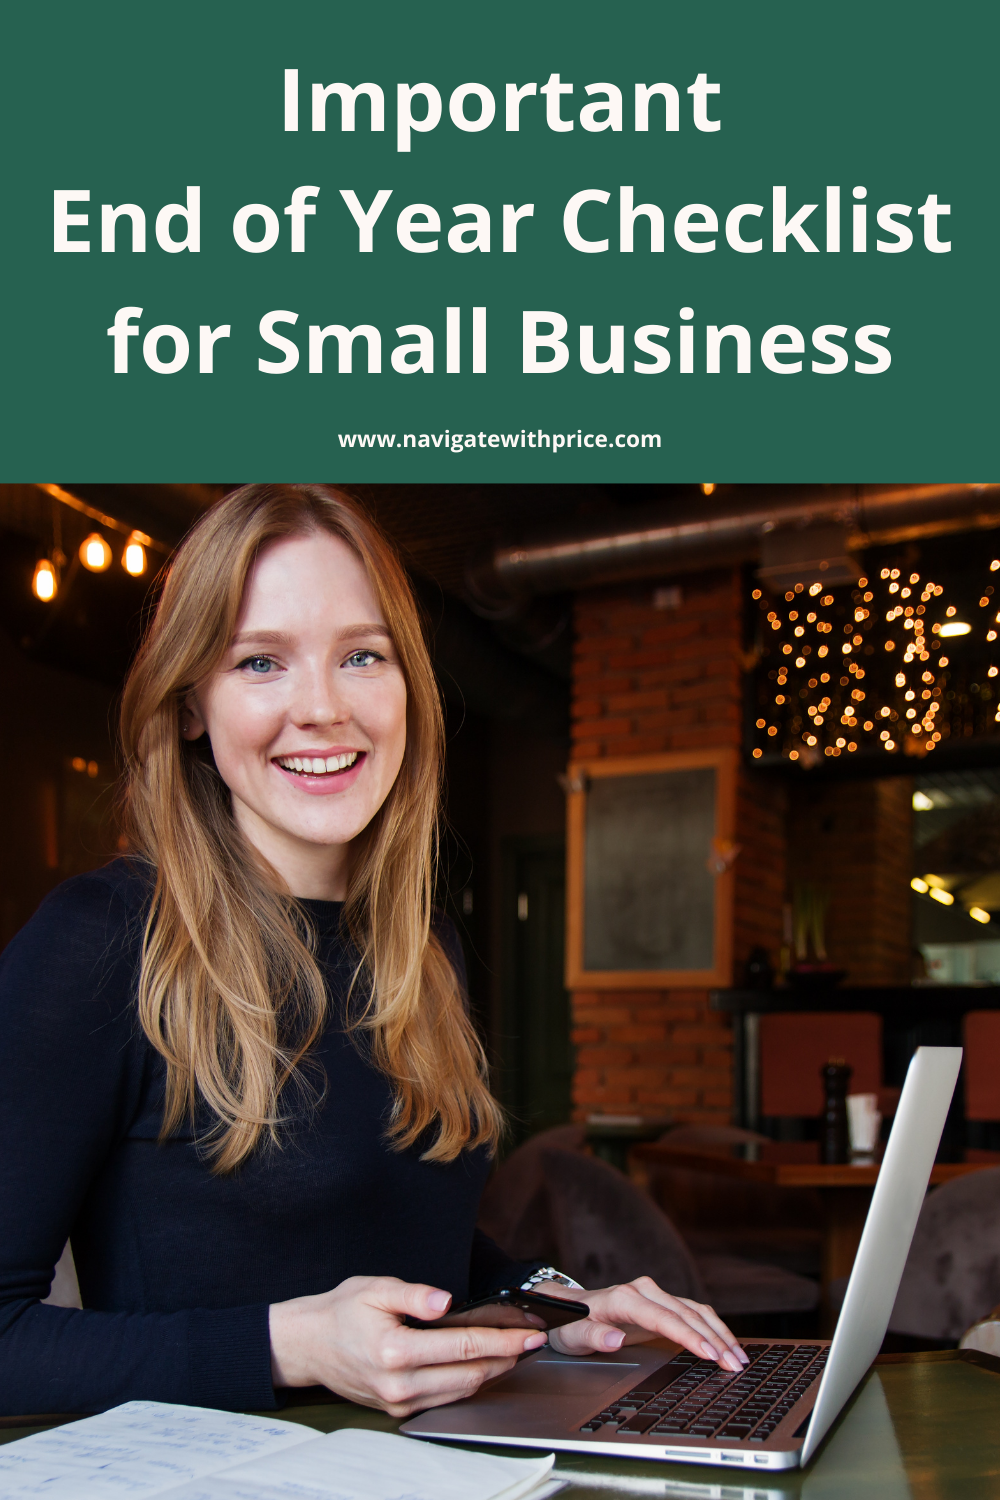 End of Year Checklist for Small Business